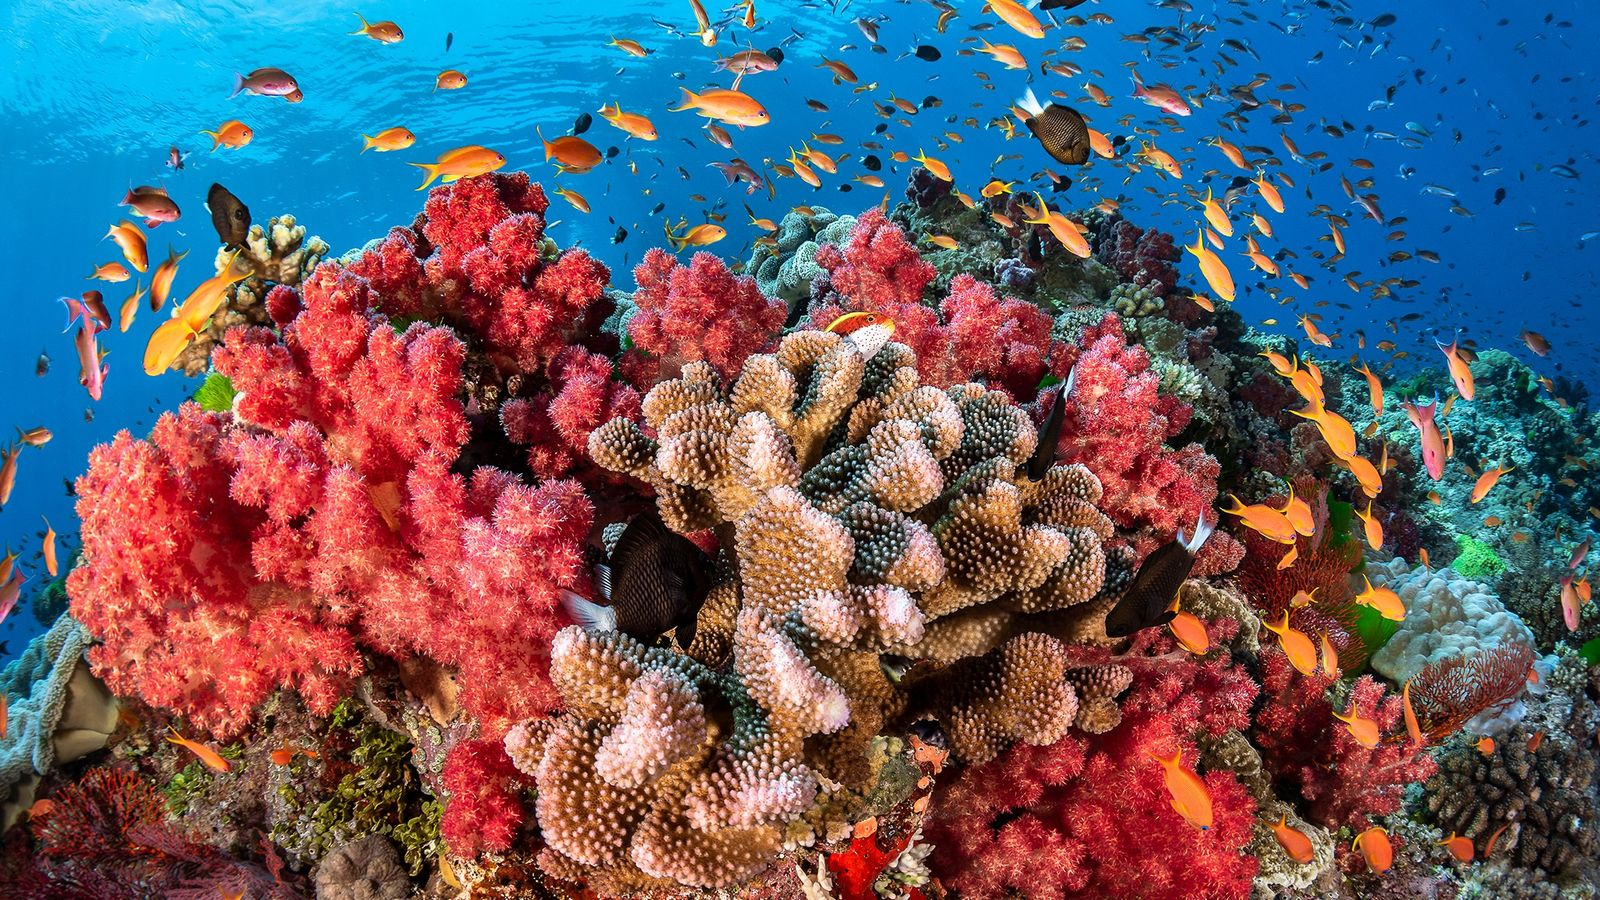 A beautiful red coral reef grows surrounding by schools of fish.